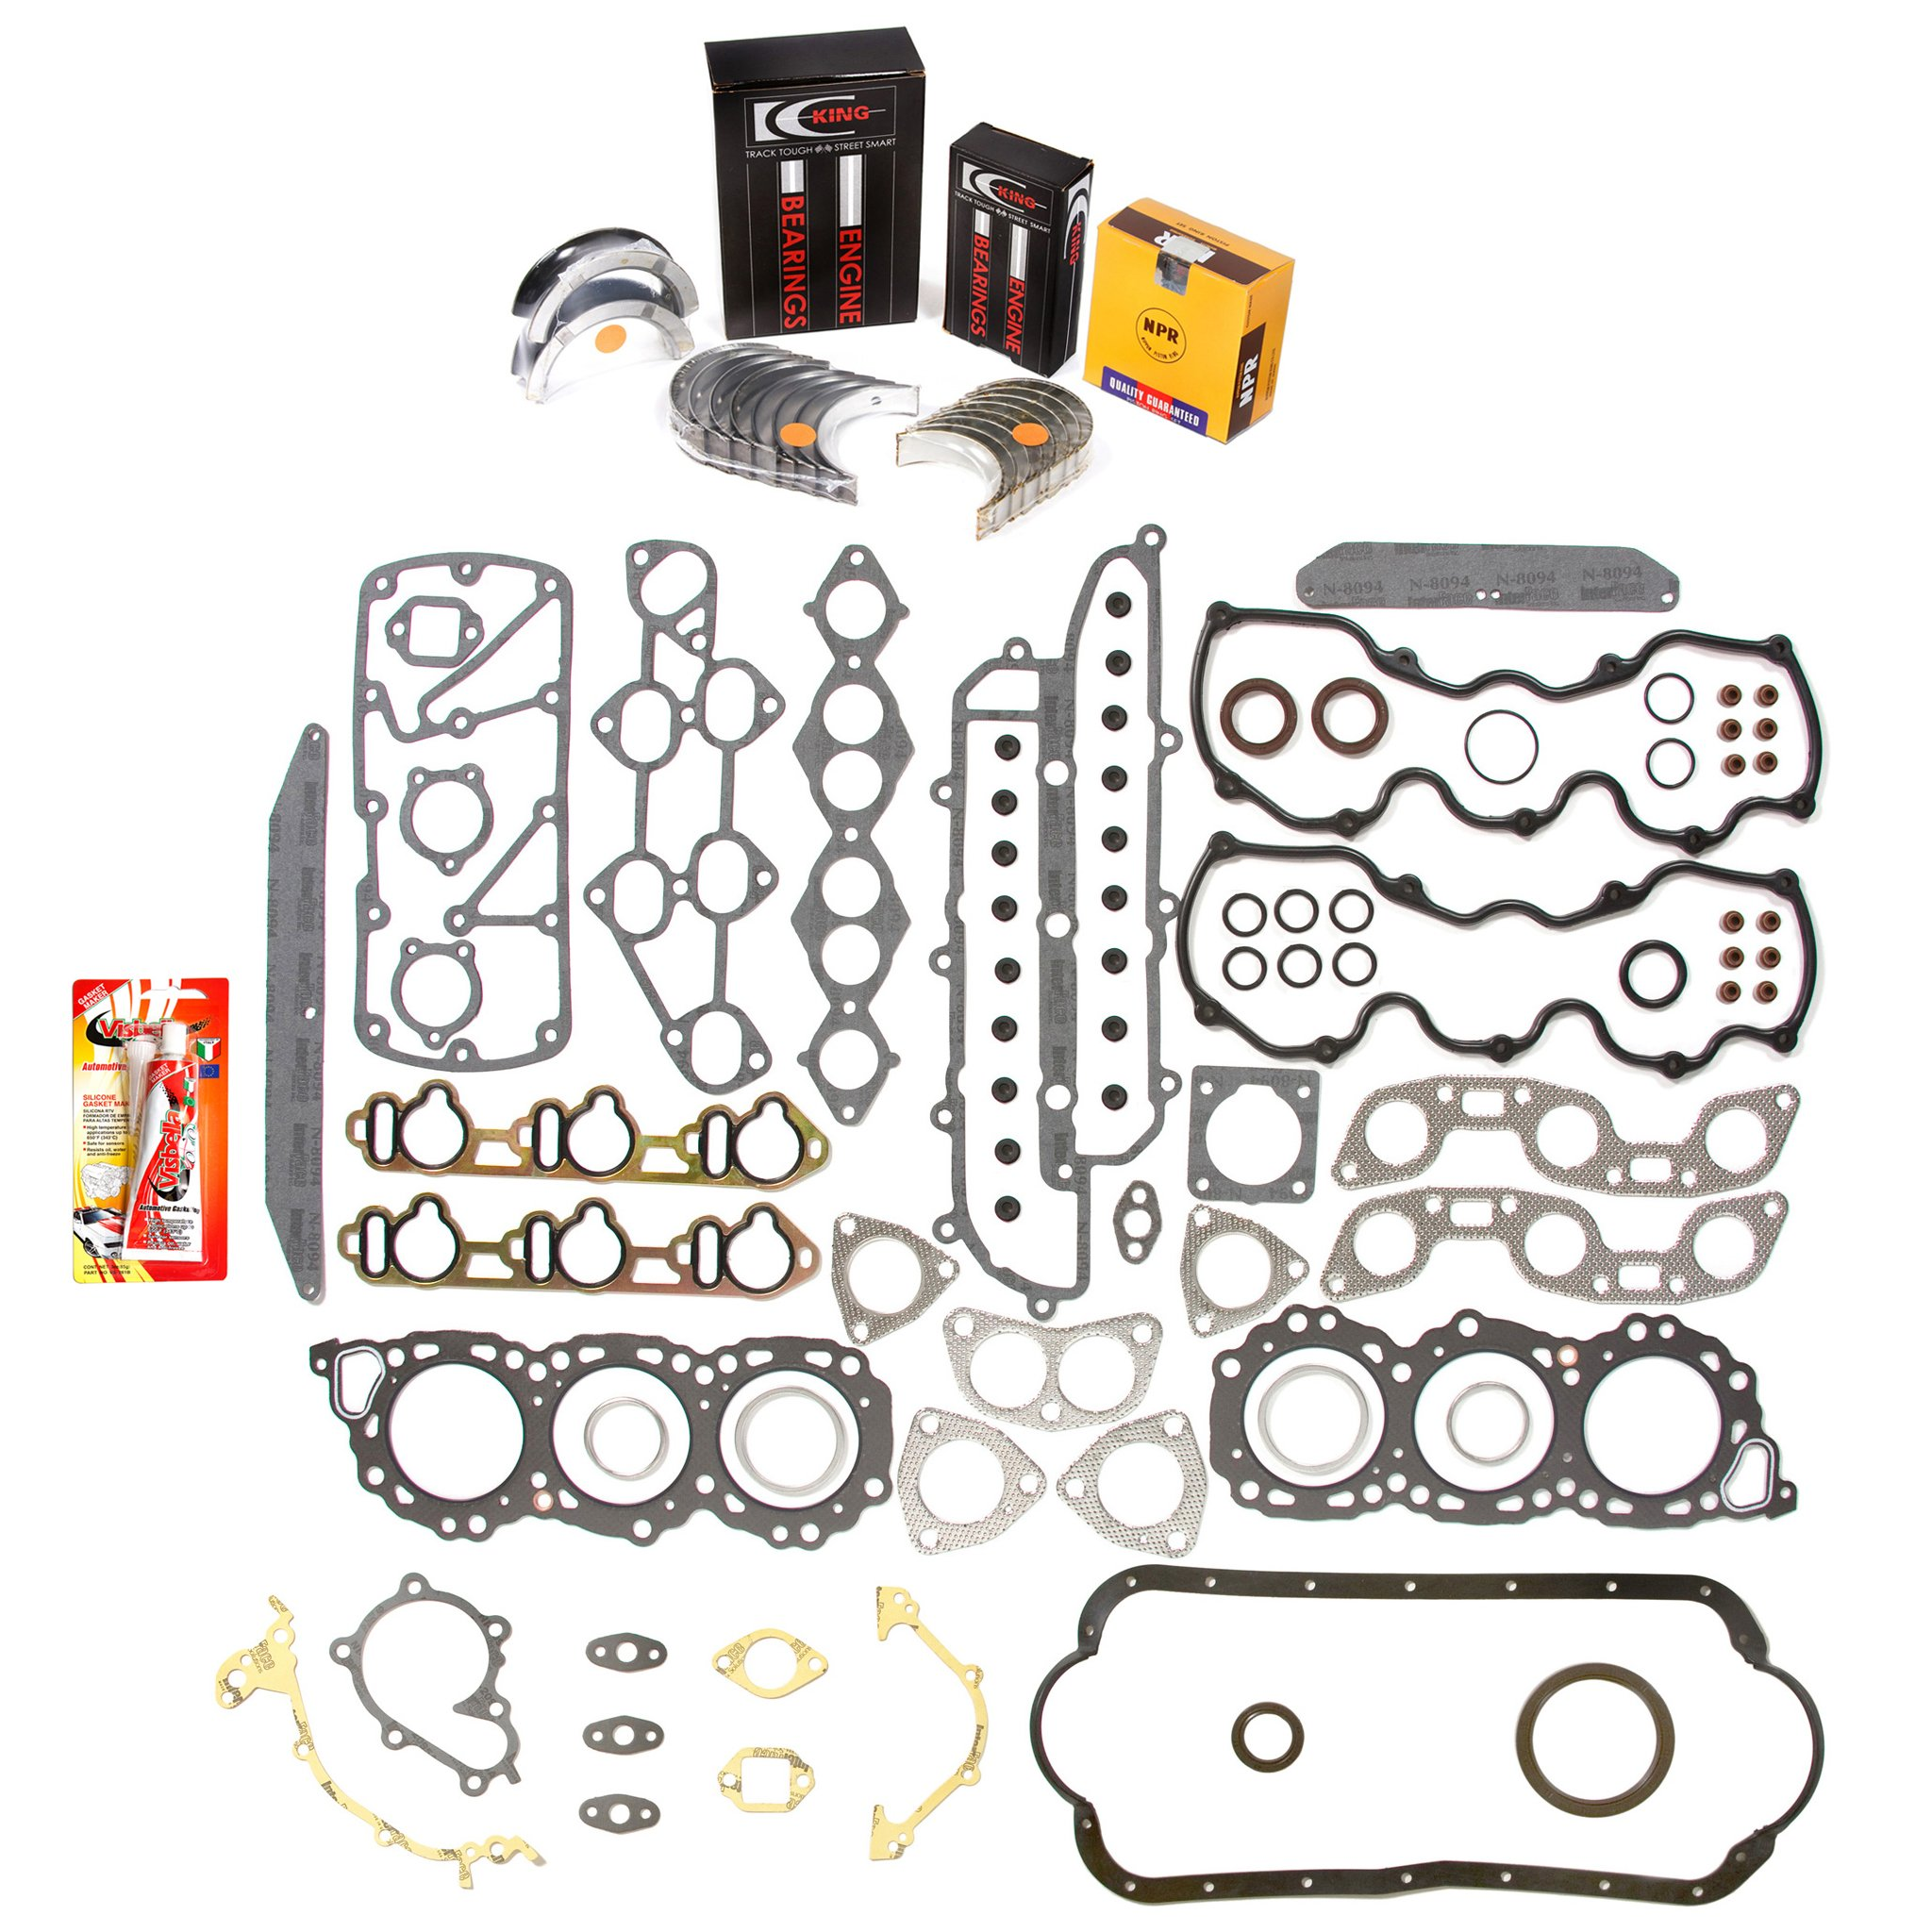 Domestic Gaskets Engine Rering Kit FSBRR3009\0\0\0 84-86 Nissan Maxima 300ZX 3.0 SOHC VG30 Full Gasket Set, Standard Size Main Rod Bearings, Standard Size Piston Rings